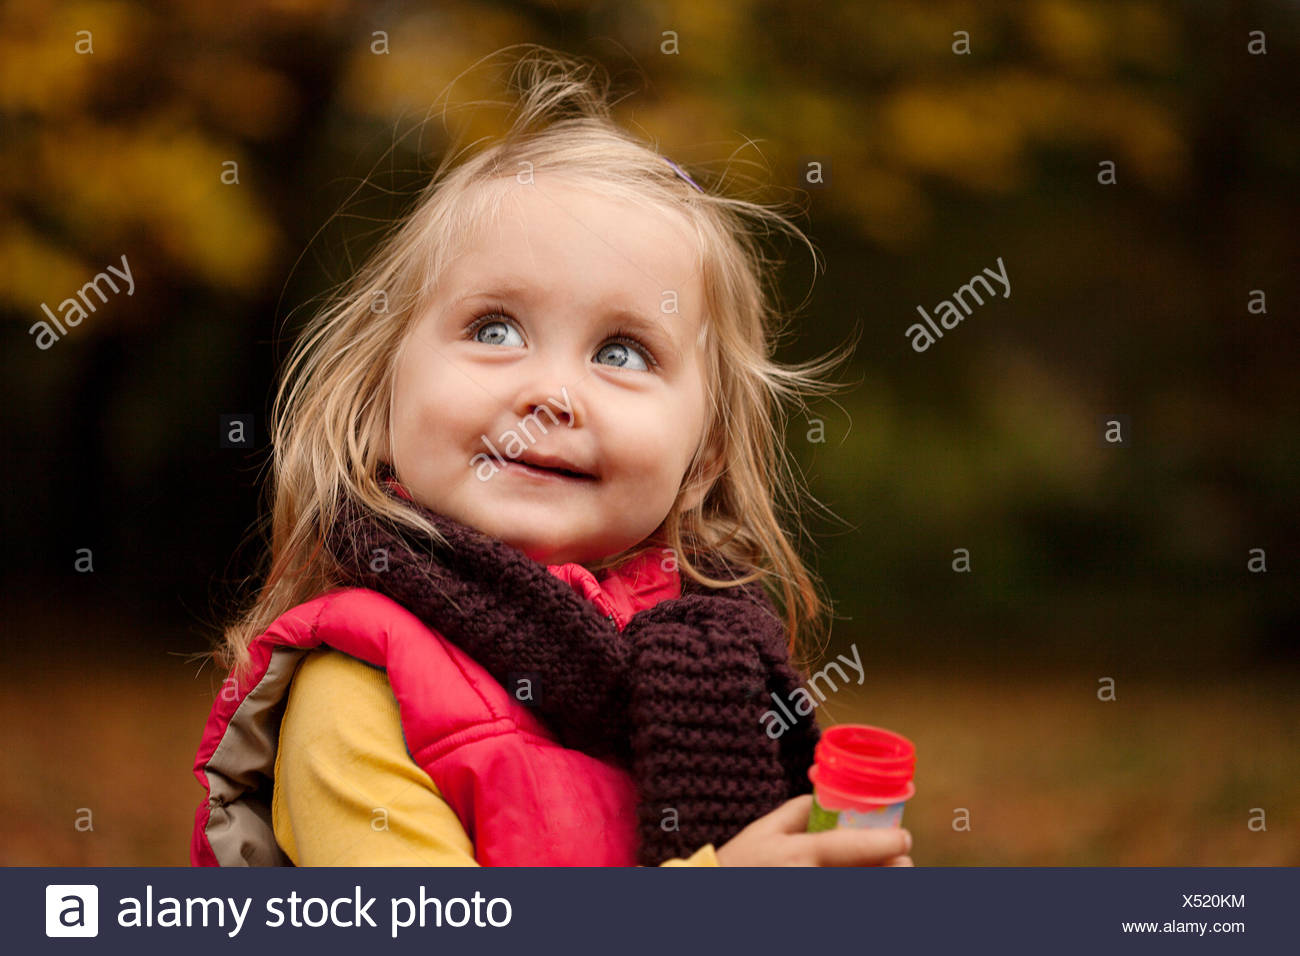 Young girl with blonde hair, portrait - Stock Image